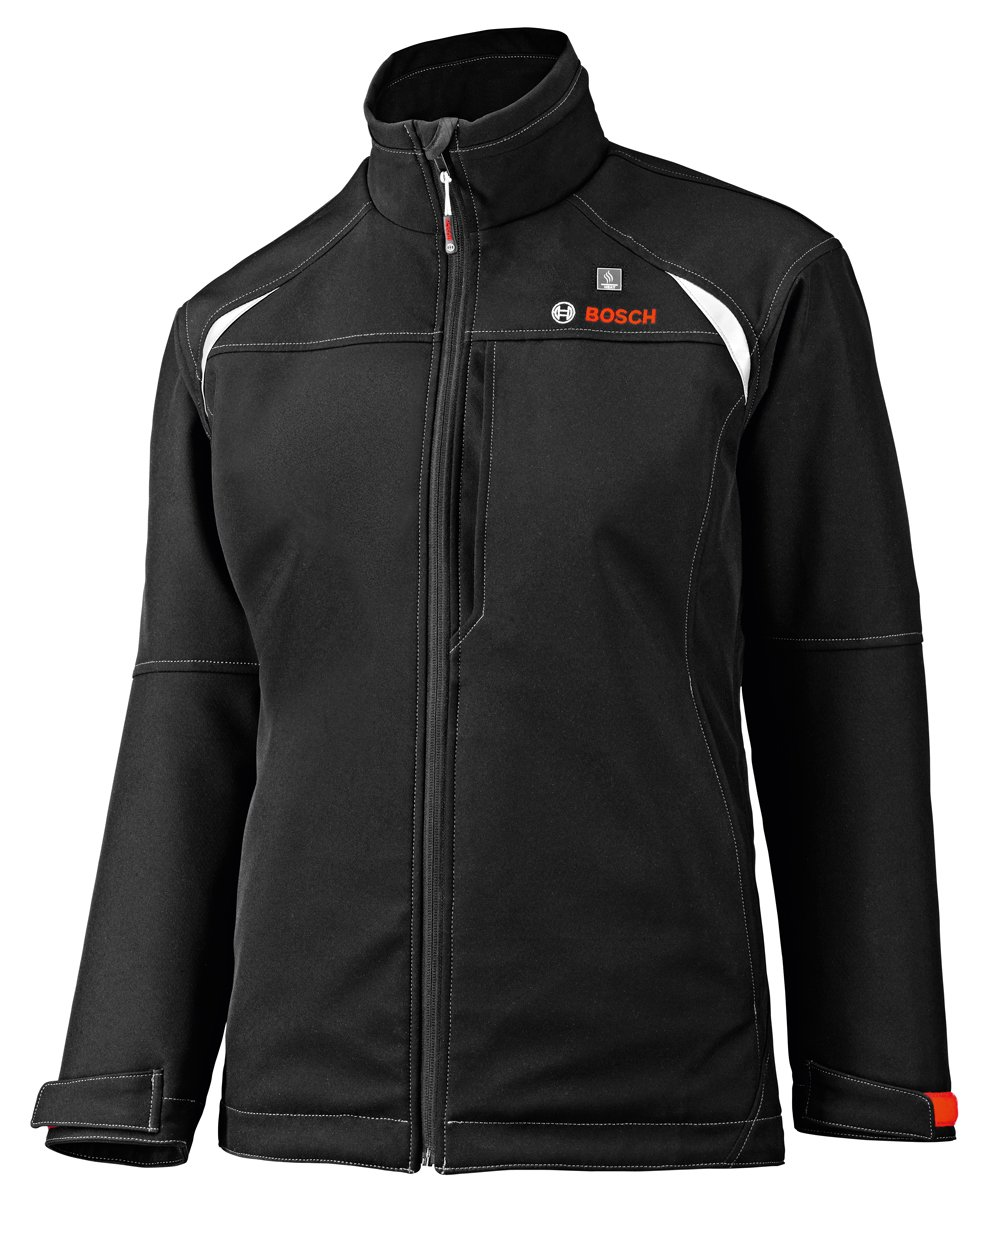 Bosch Women's 12-Volt Max Lithium-Ion Soft Shell Heated Jacket Kit with 2.0Ah Battery, Charger and Holster PSJ120M-102W by Bosch (Image #1)